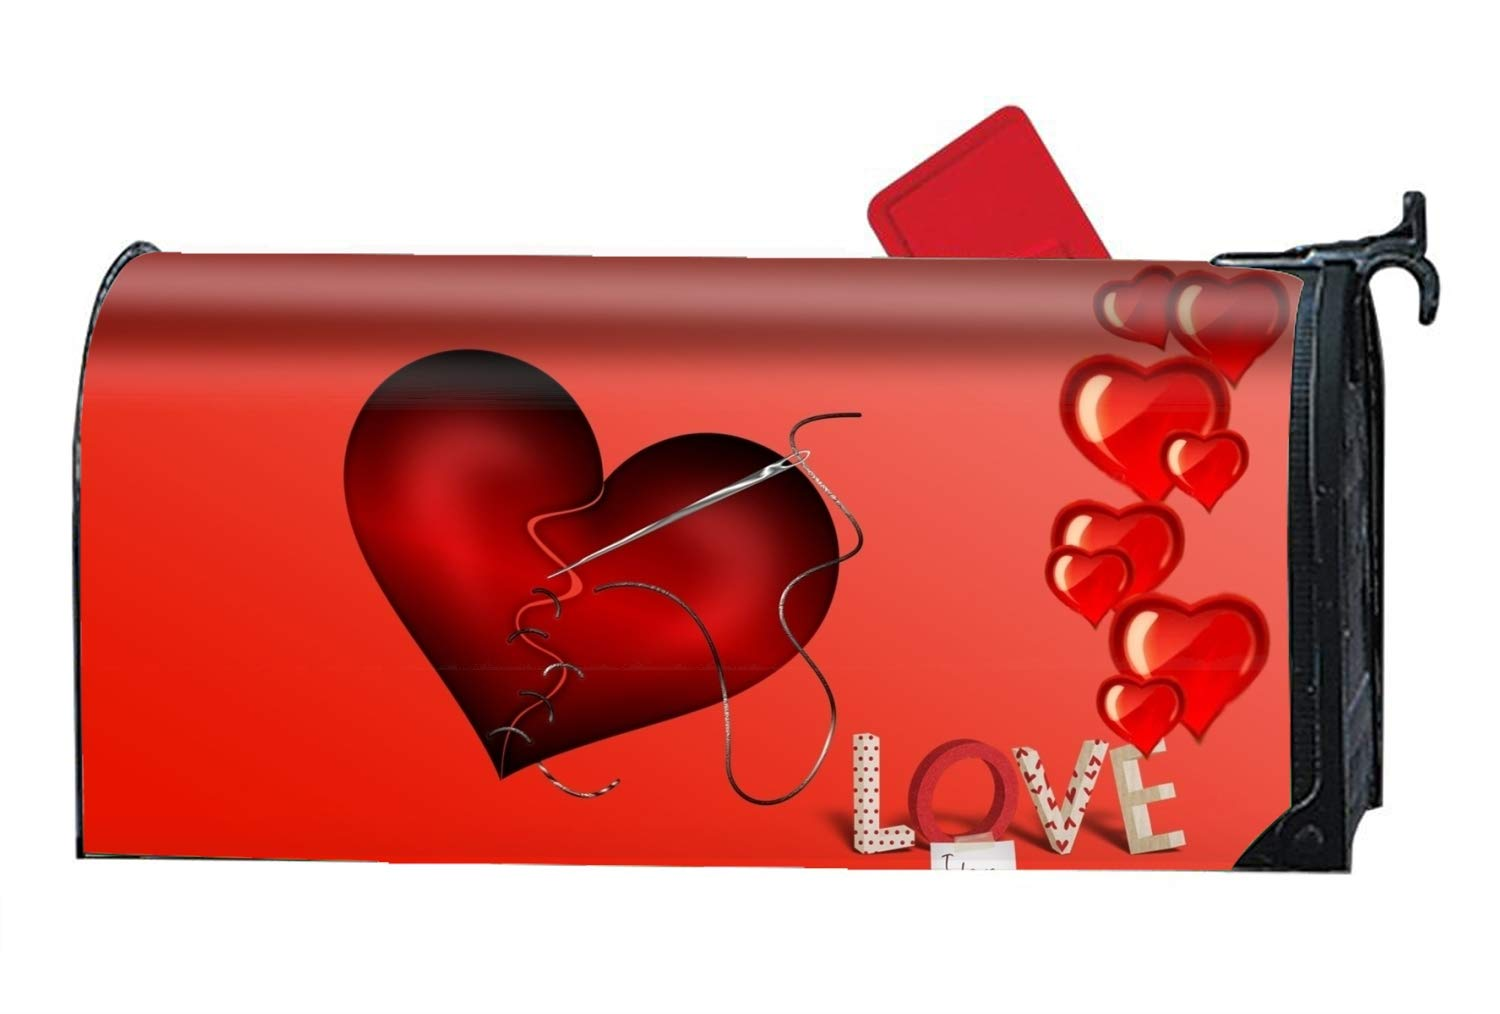 FANMIL Holiday Valentines Day Heart Red Love Custom Magnetic PVC Mailbox Cover - Mailbox Makeover